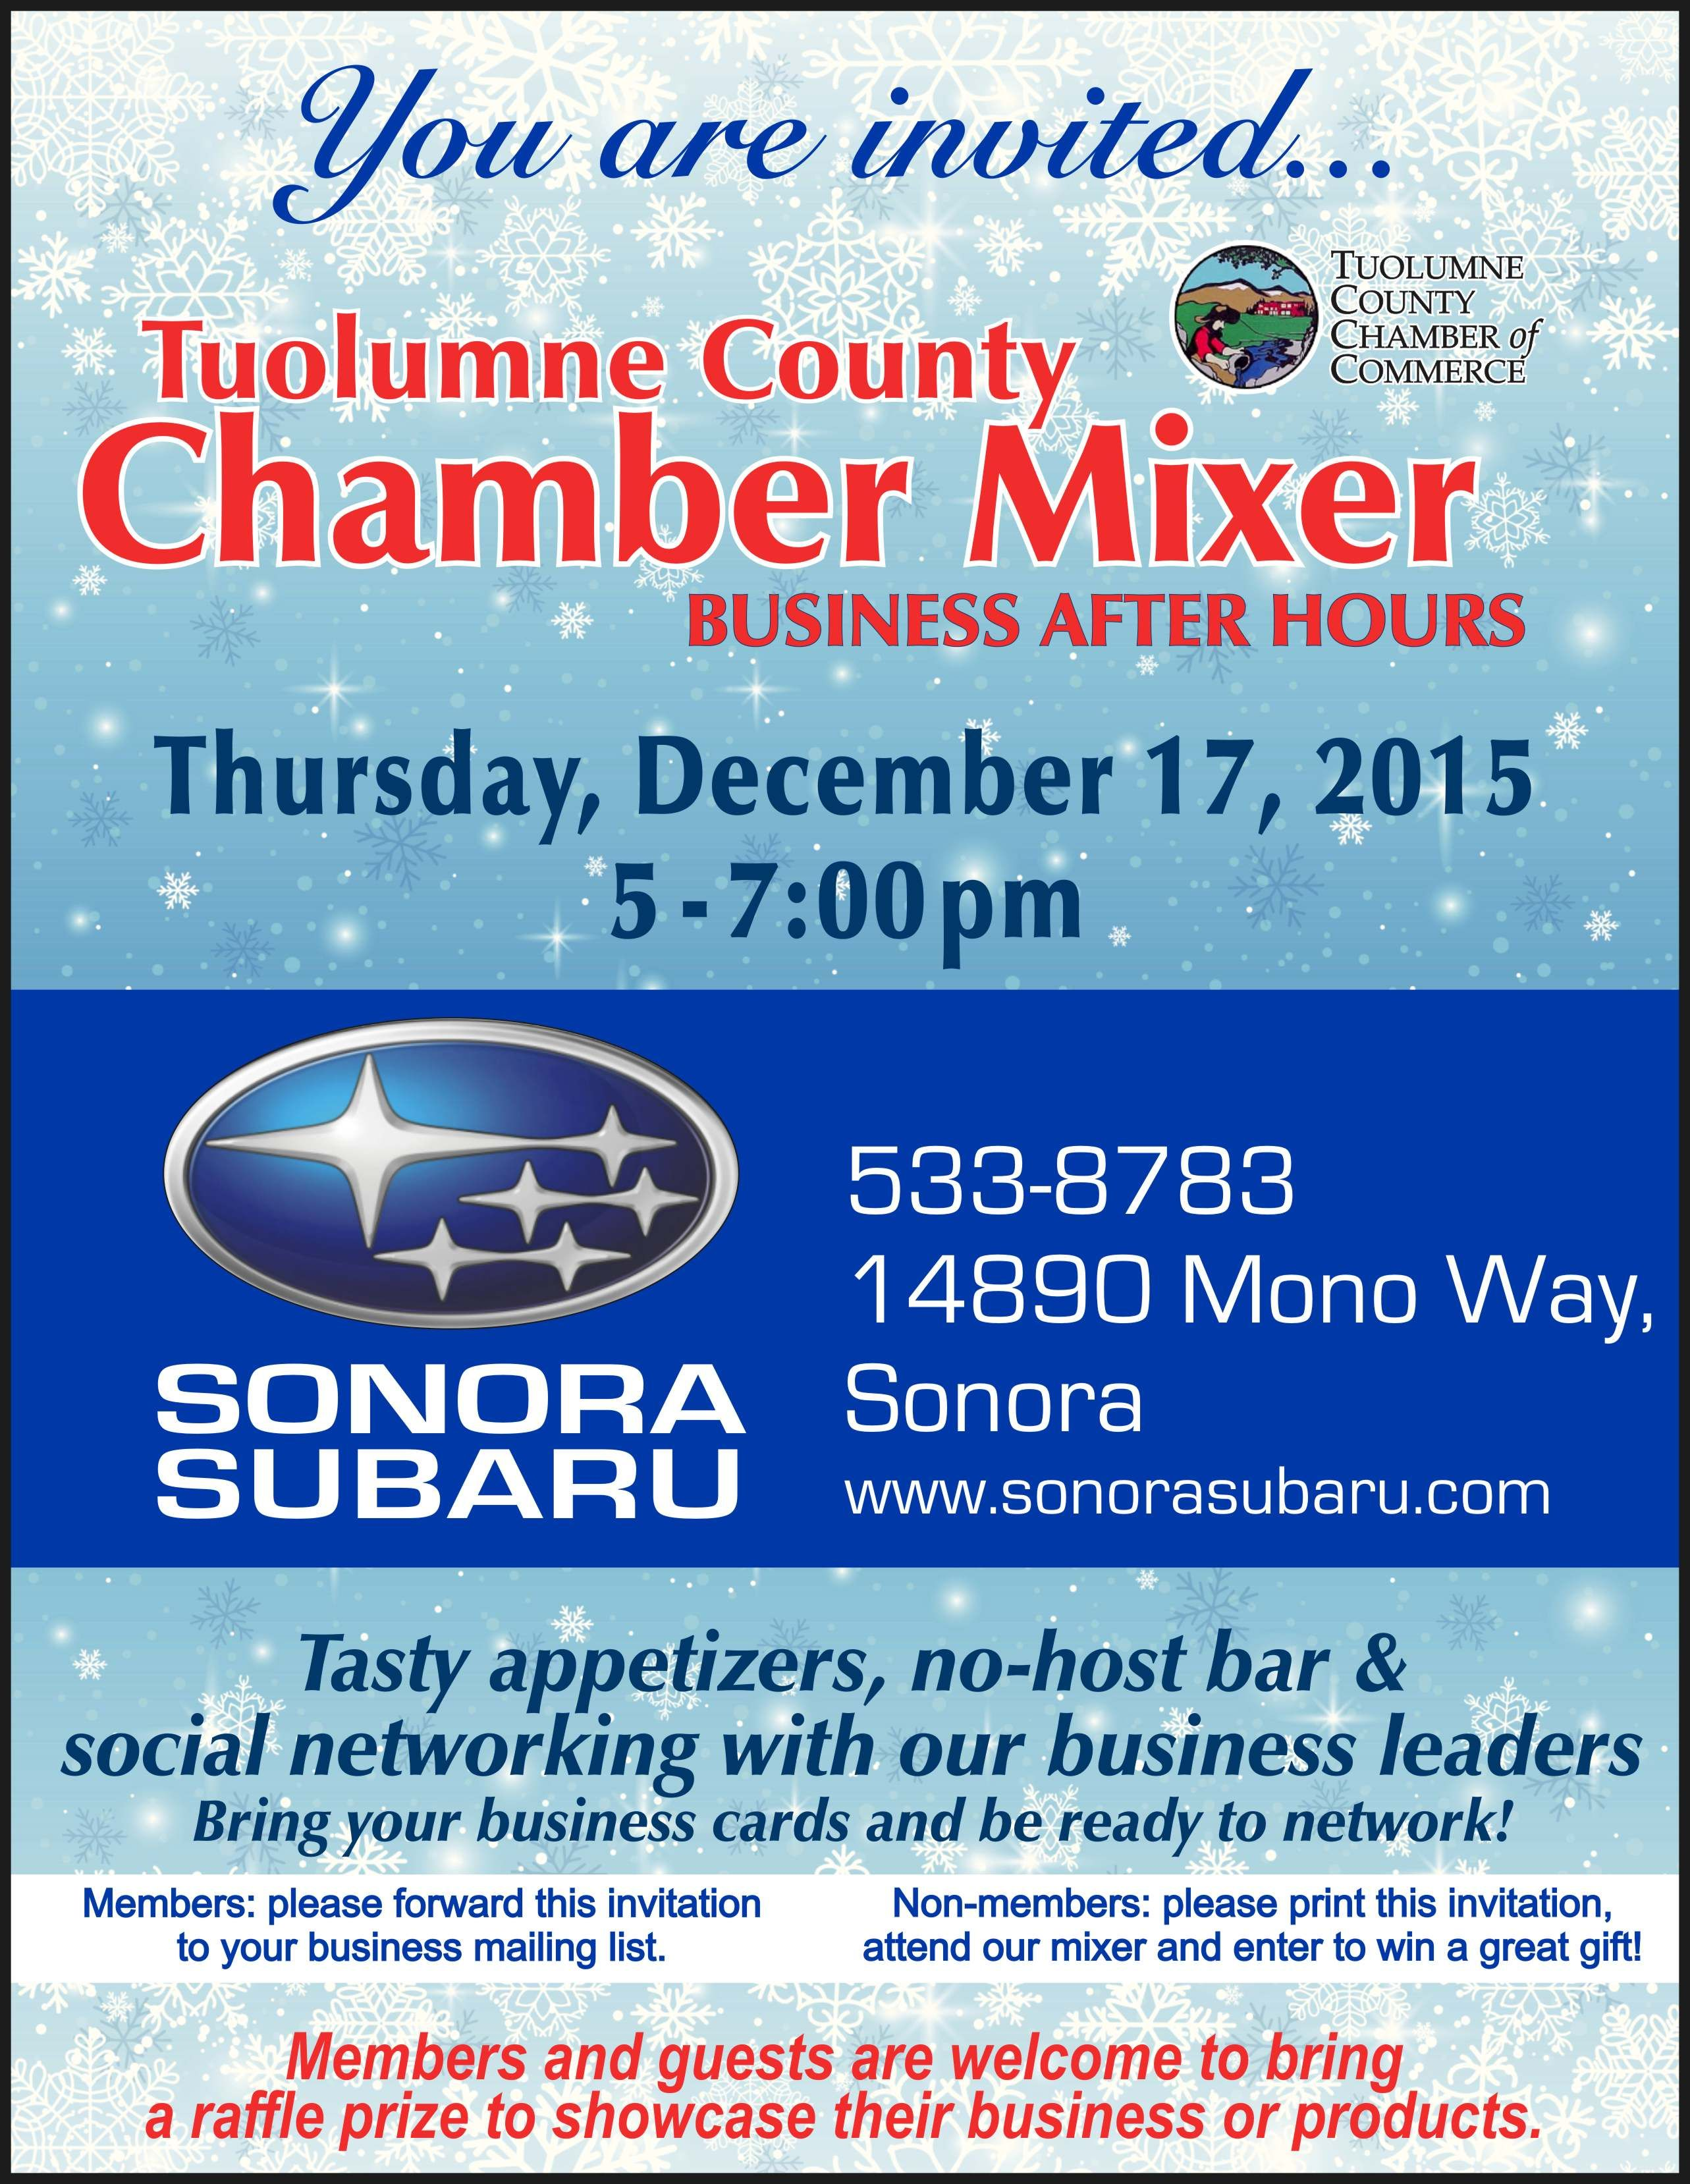 Christmas Mixer next Thursday at Sonora Subaru